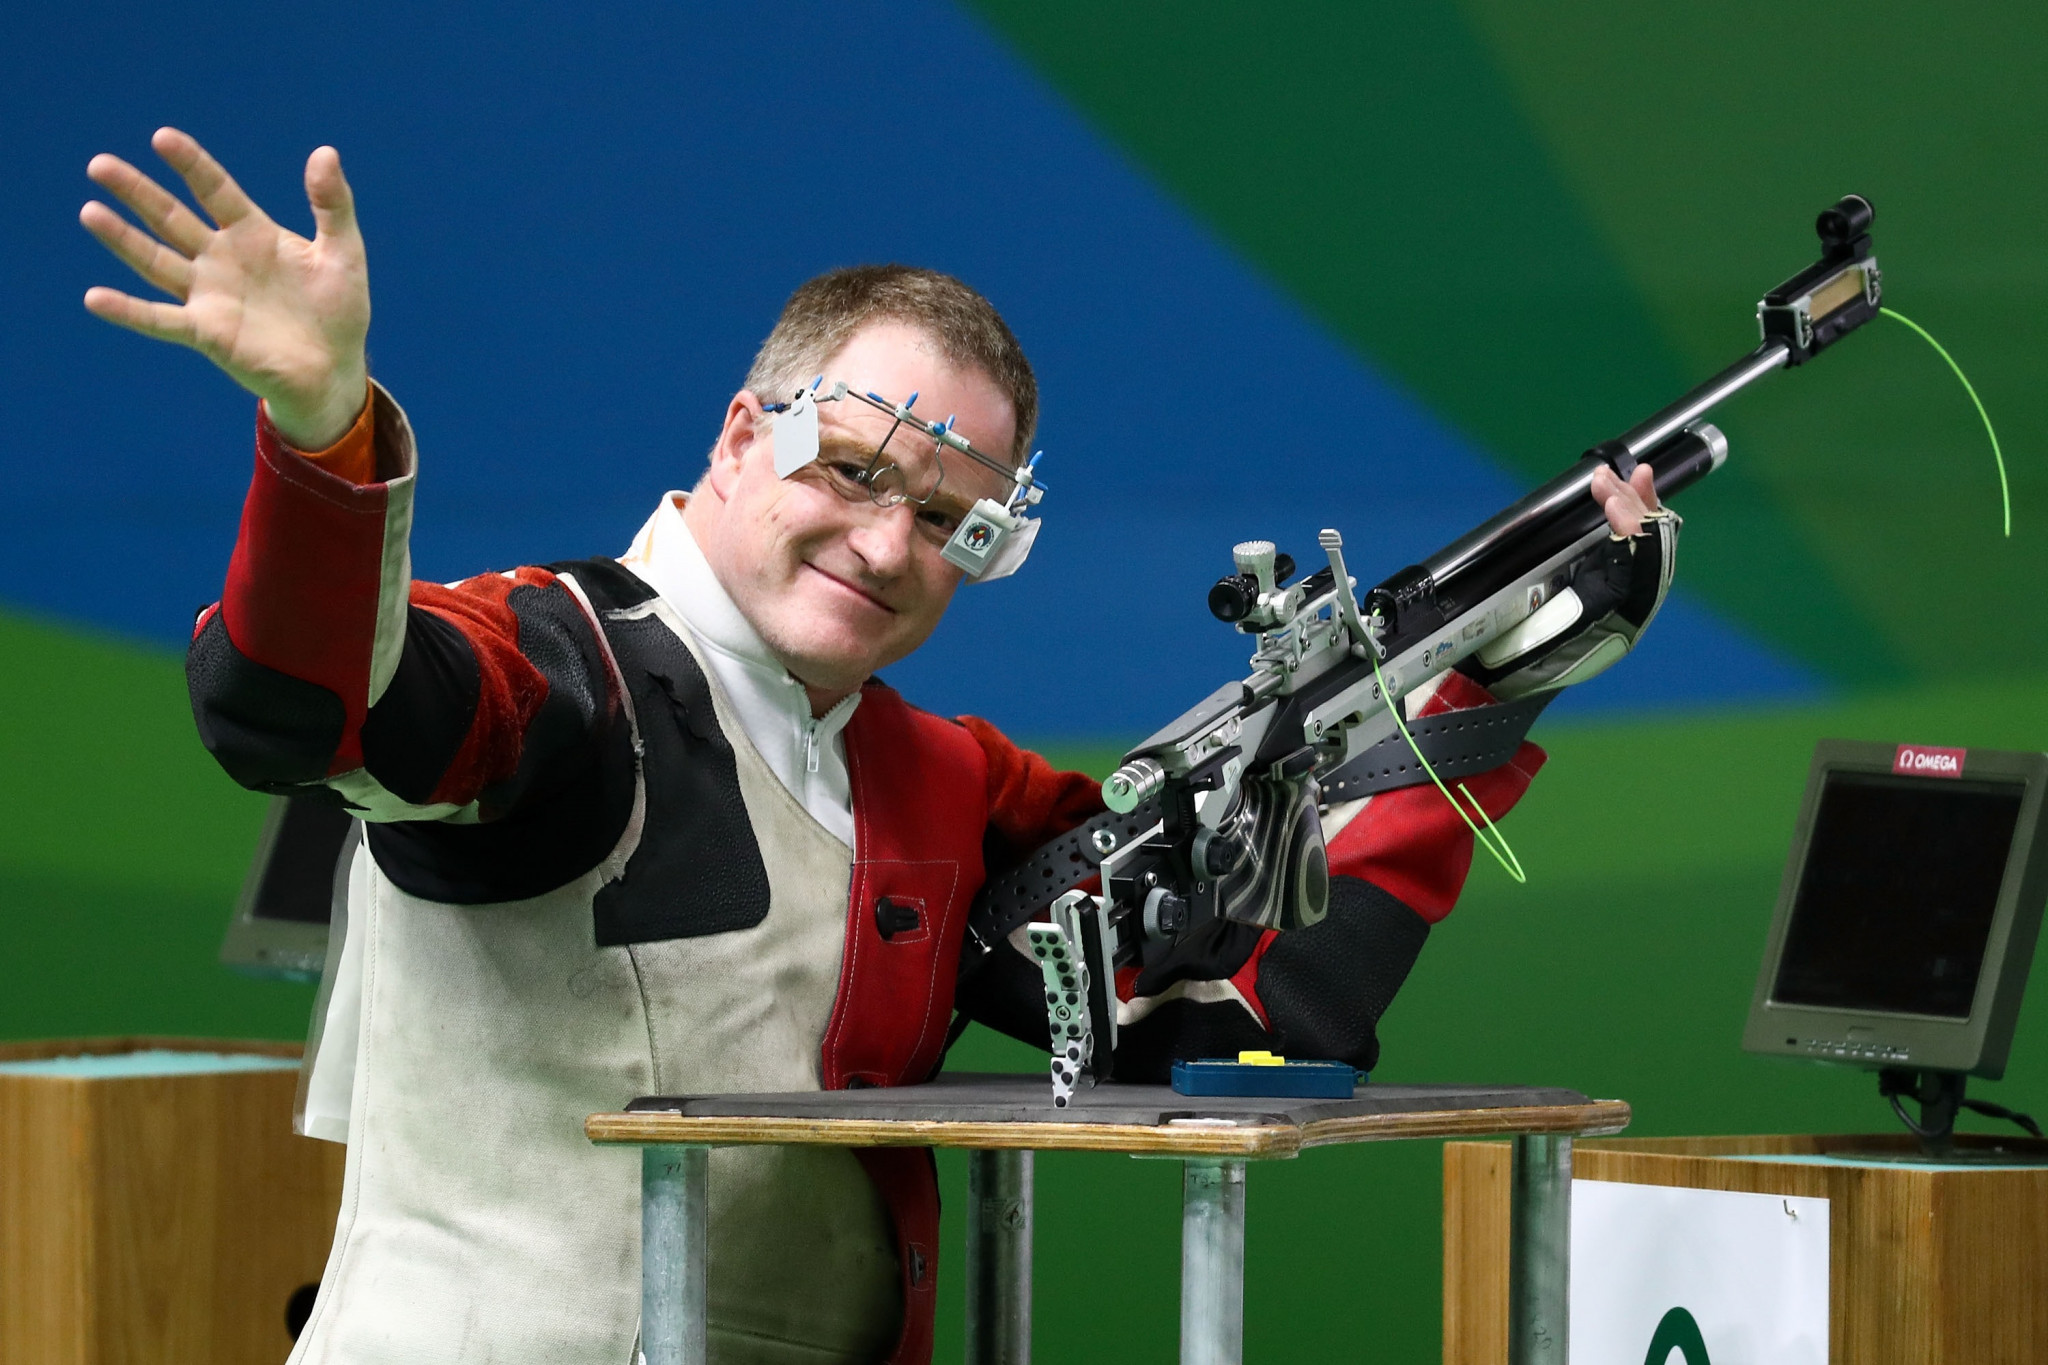 New Zealand team named for 2019 World Shooting Para Sport Championships